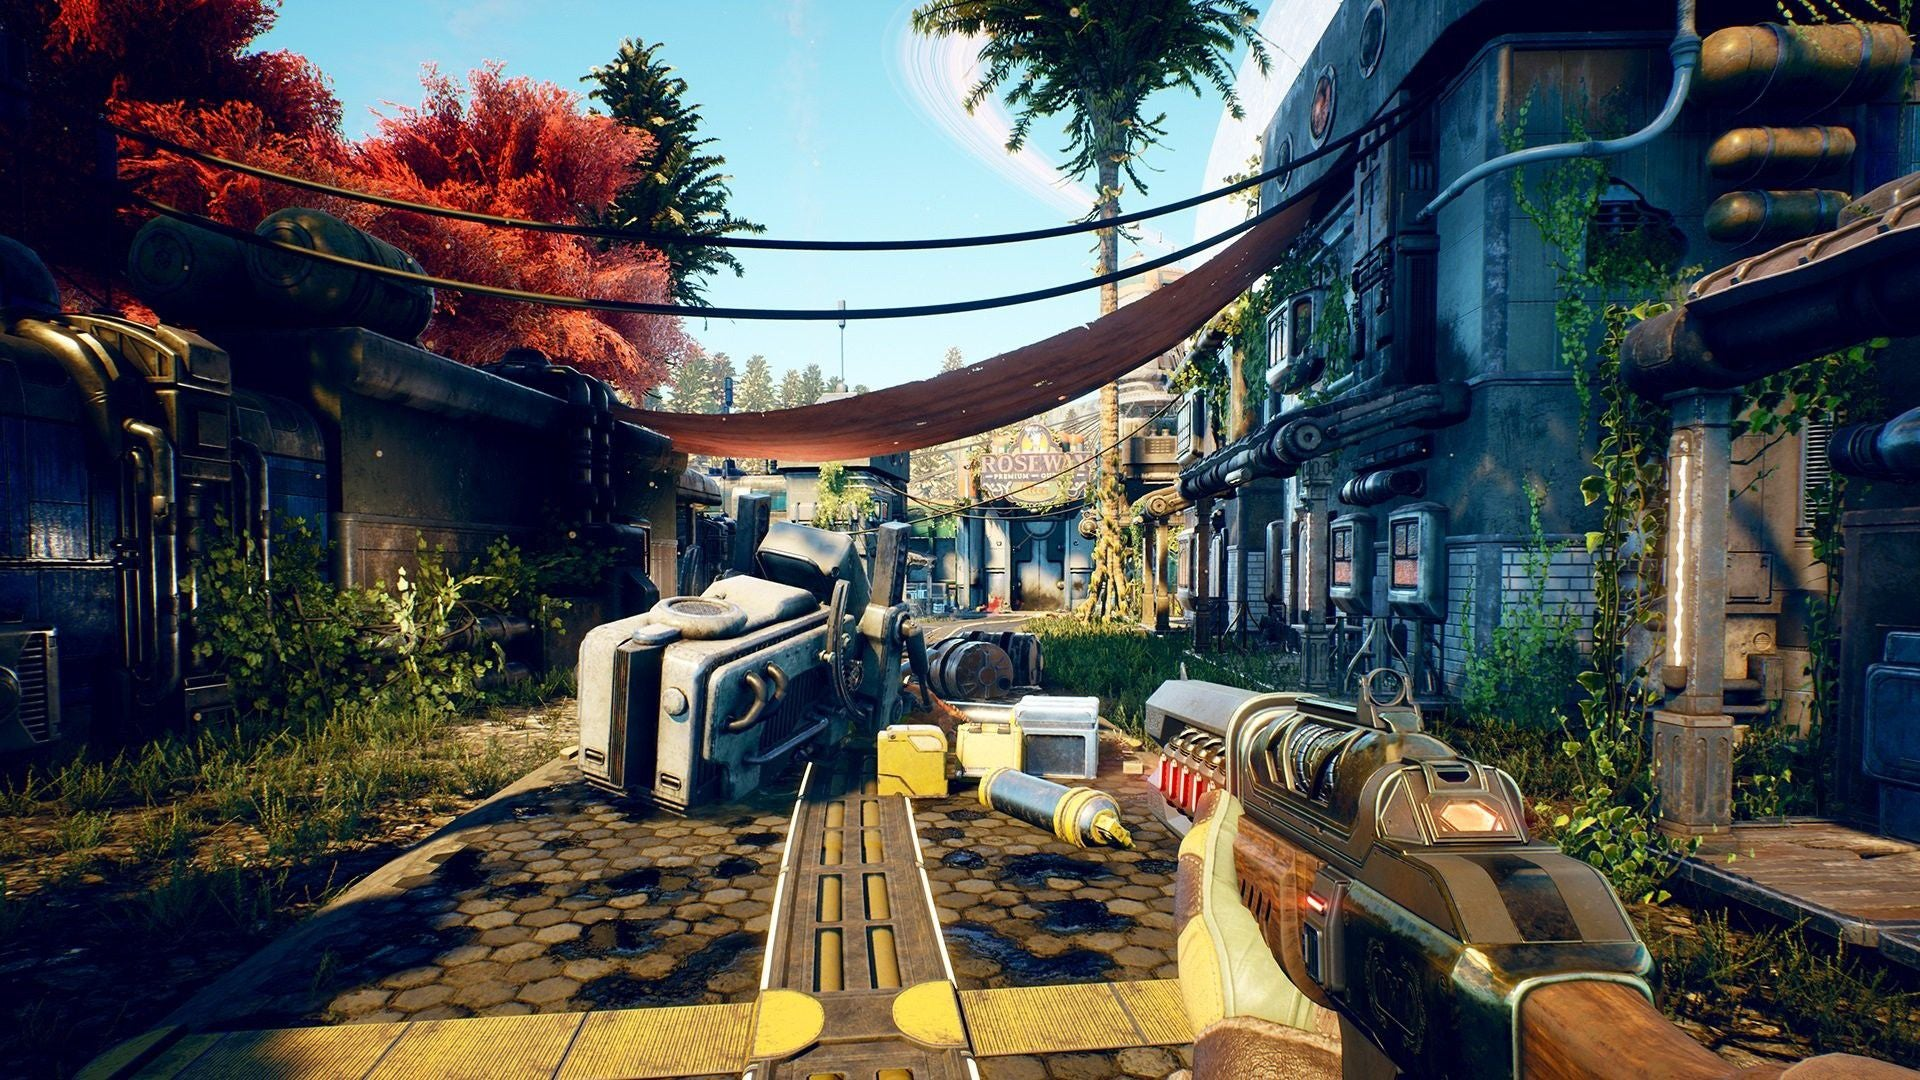 The Outer Worlds may be the best game you've played after New Vegas.